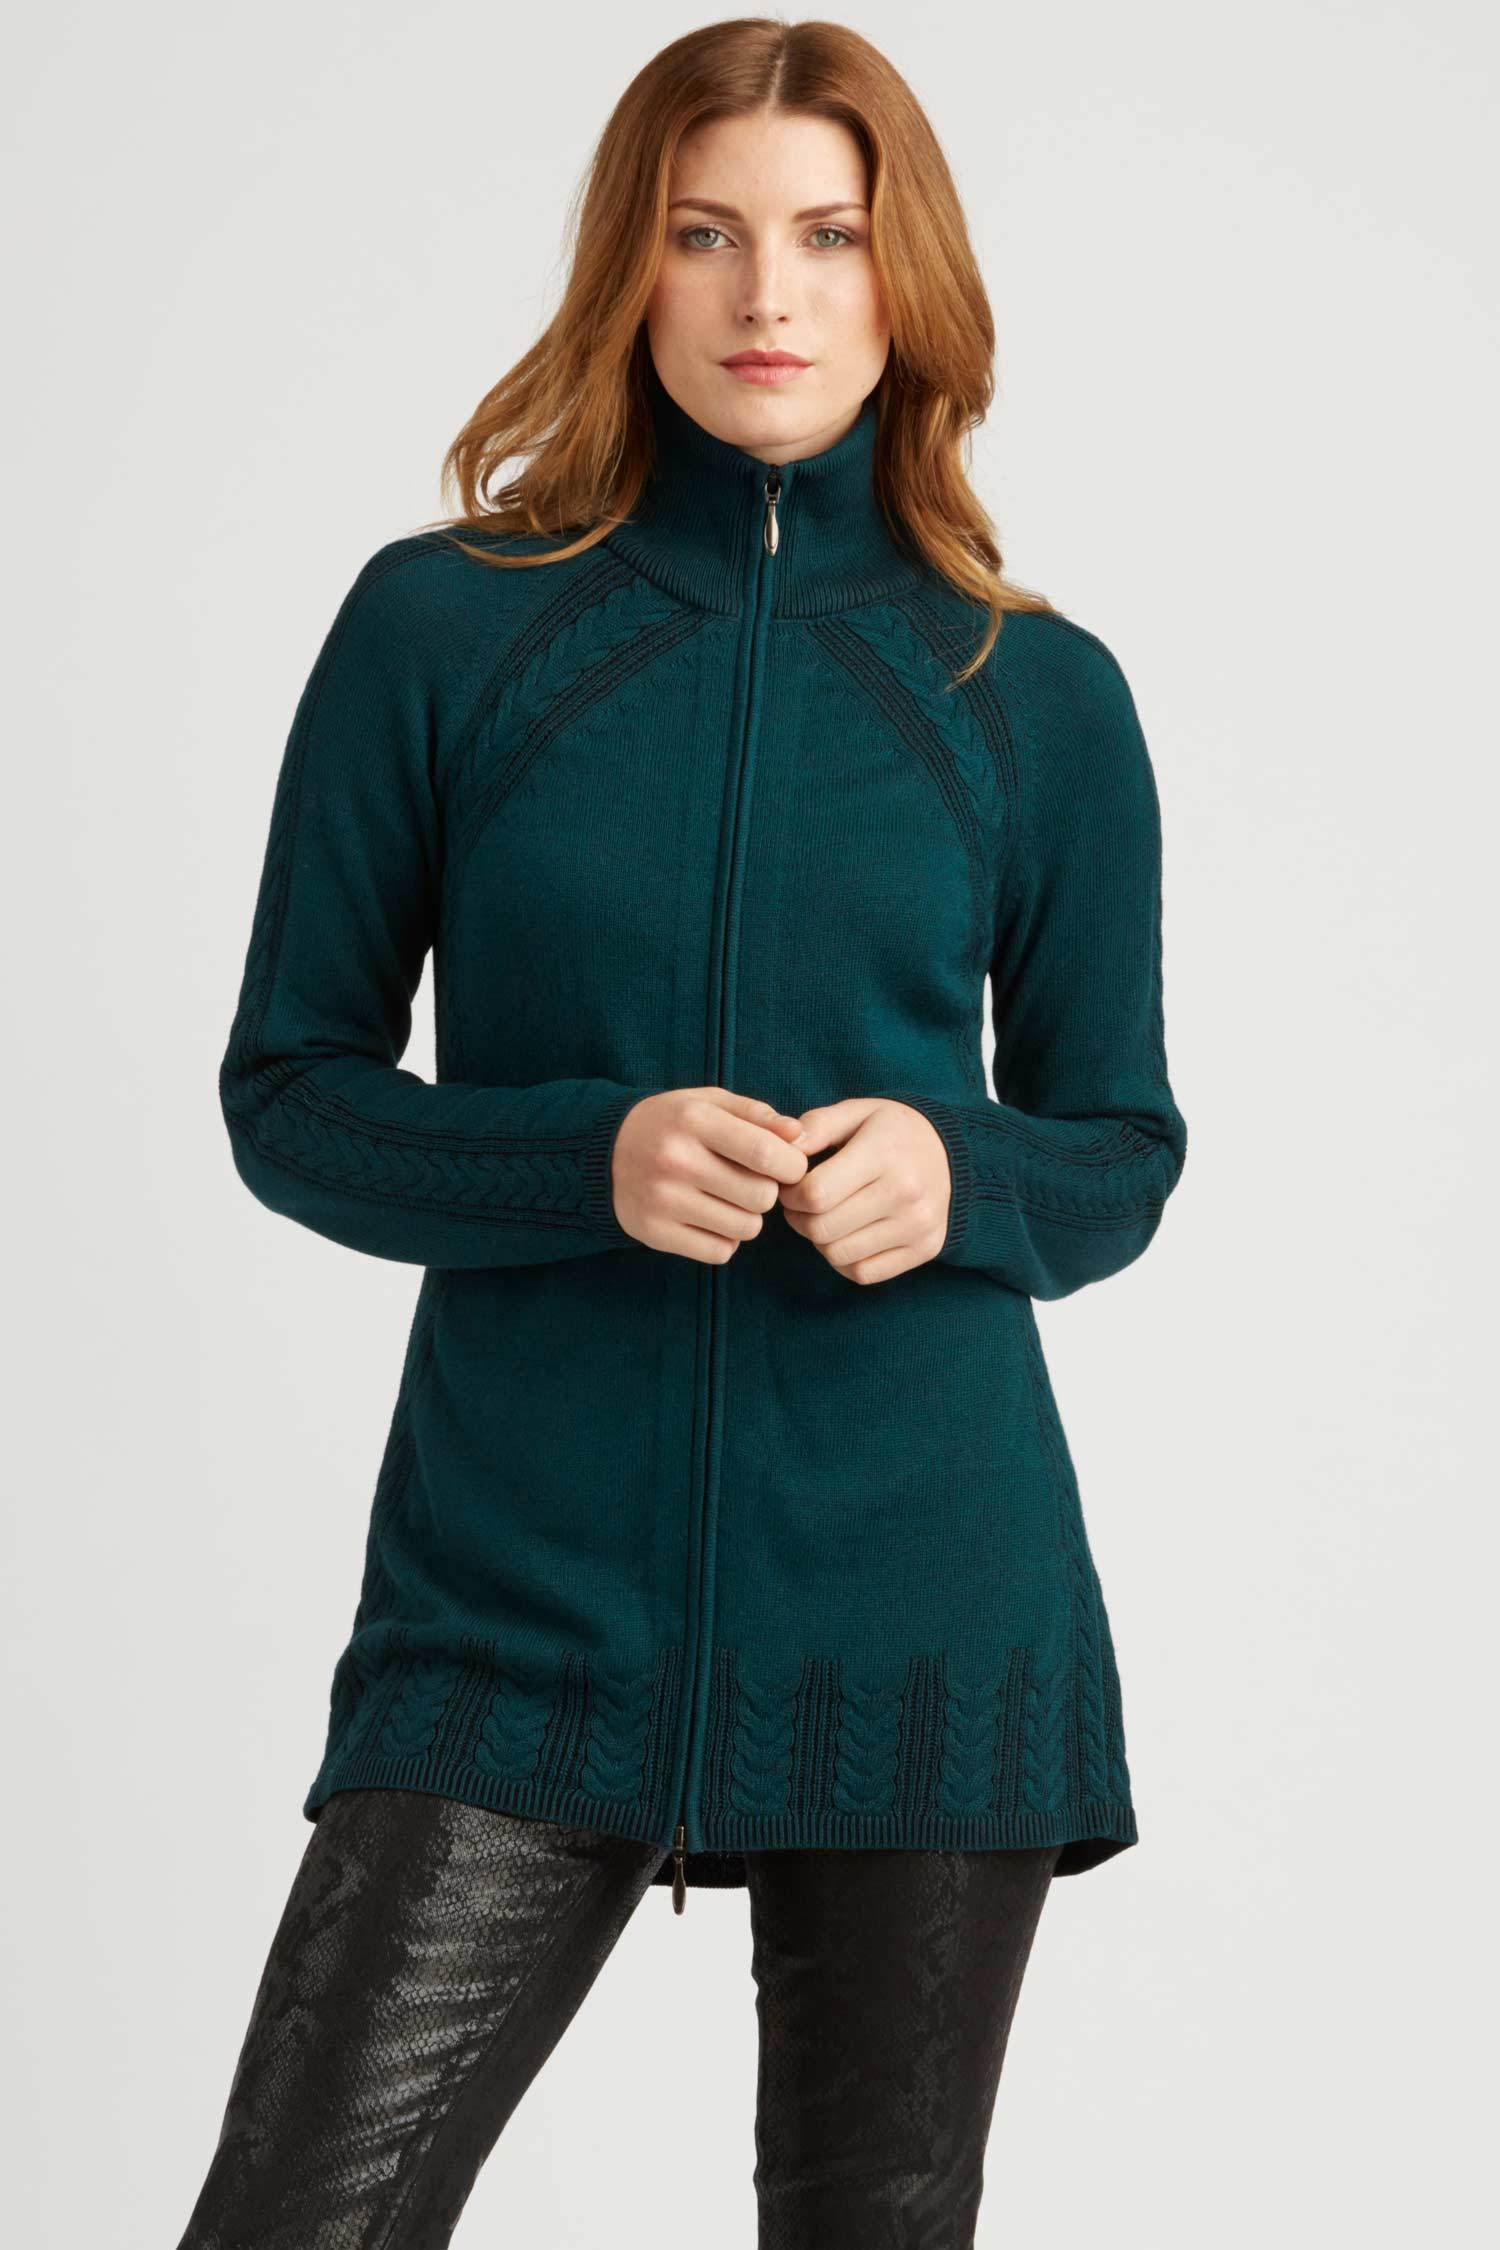 Womens Organic Cotton Sweater | Teal | Cable Zip Cardigan